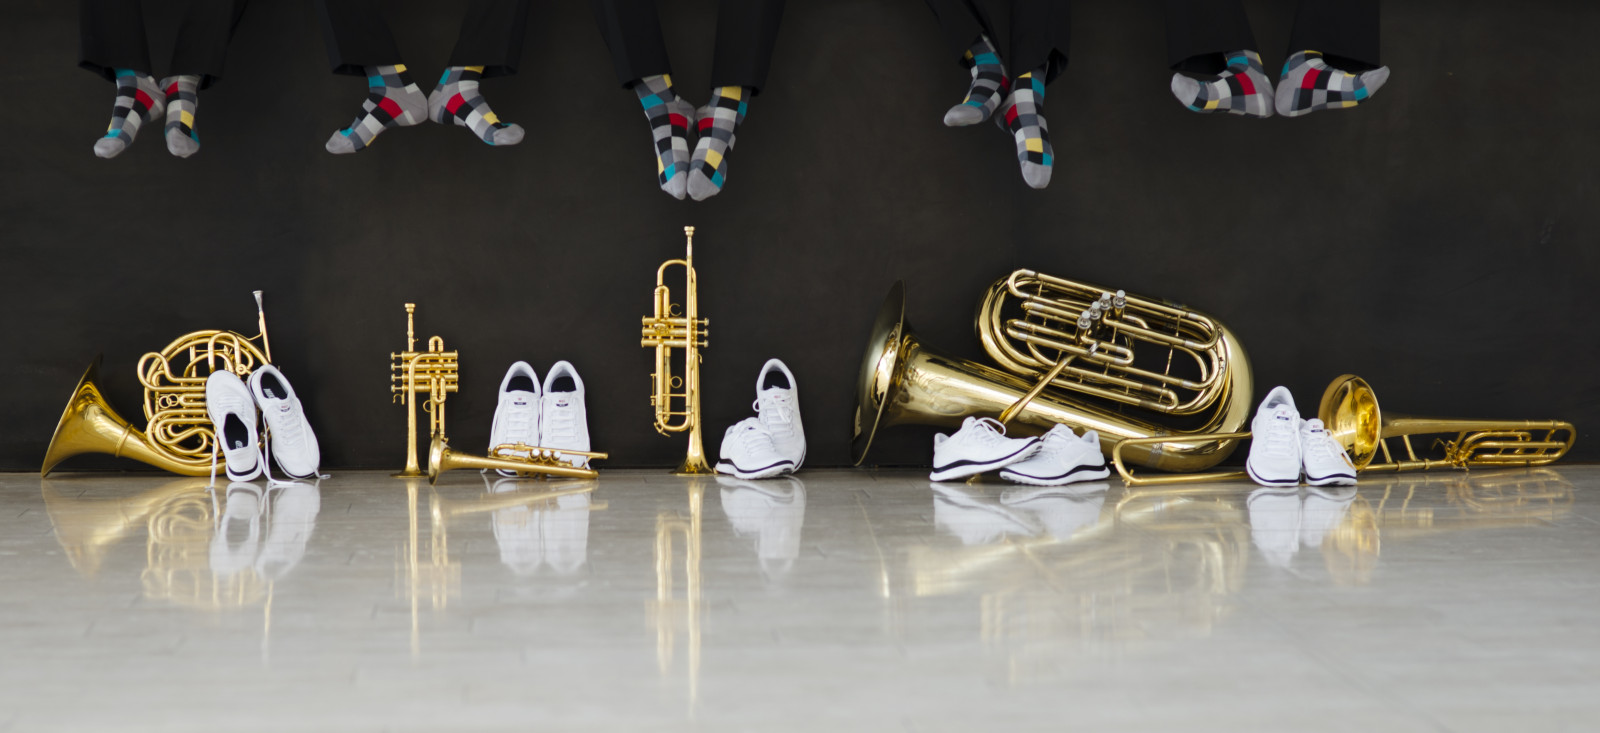 Socks-NikeShoes-Instruments-BoHuang.ca14-e1432940224534